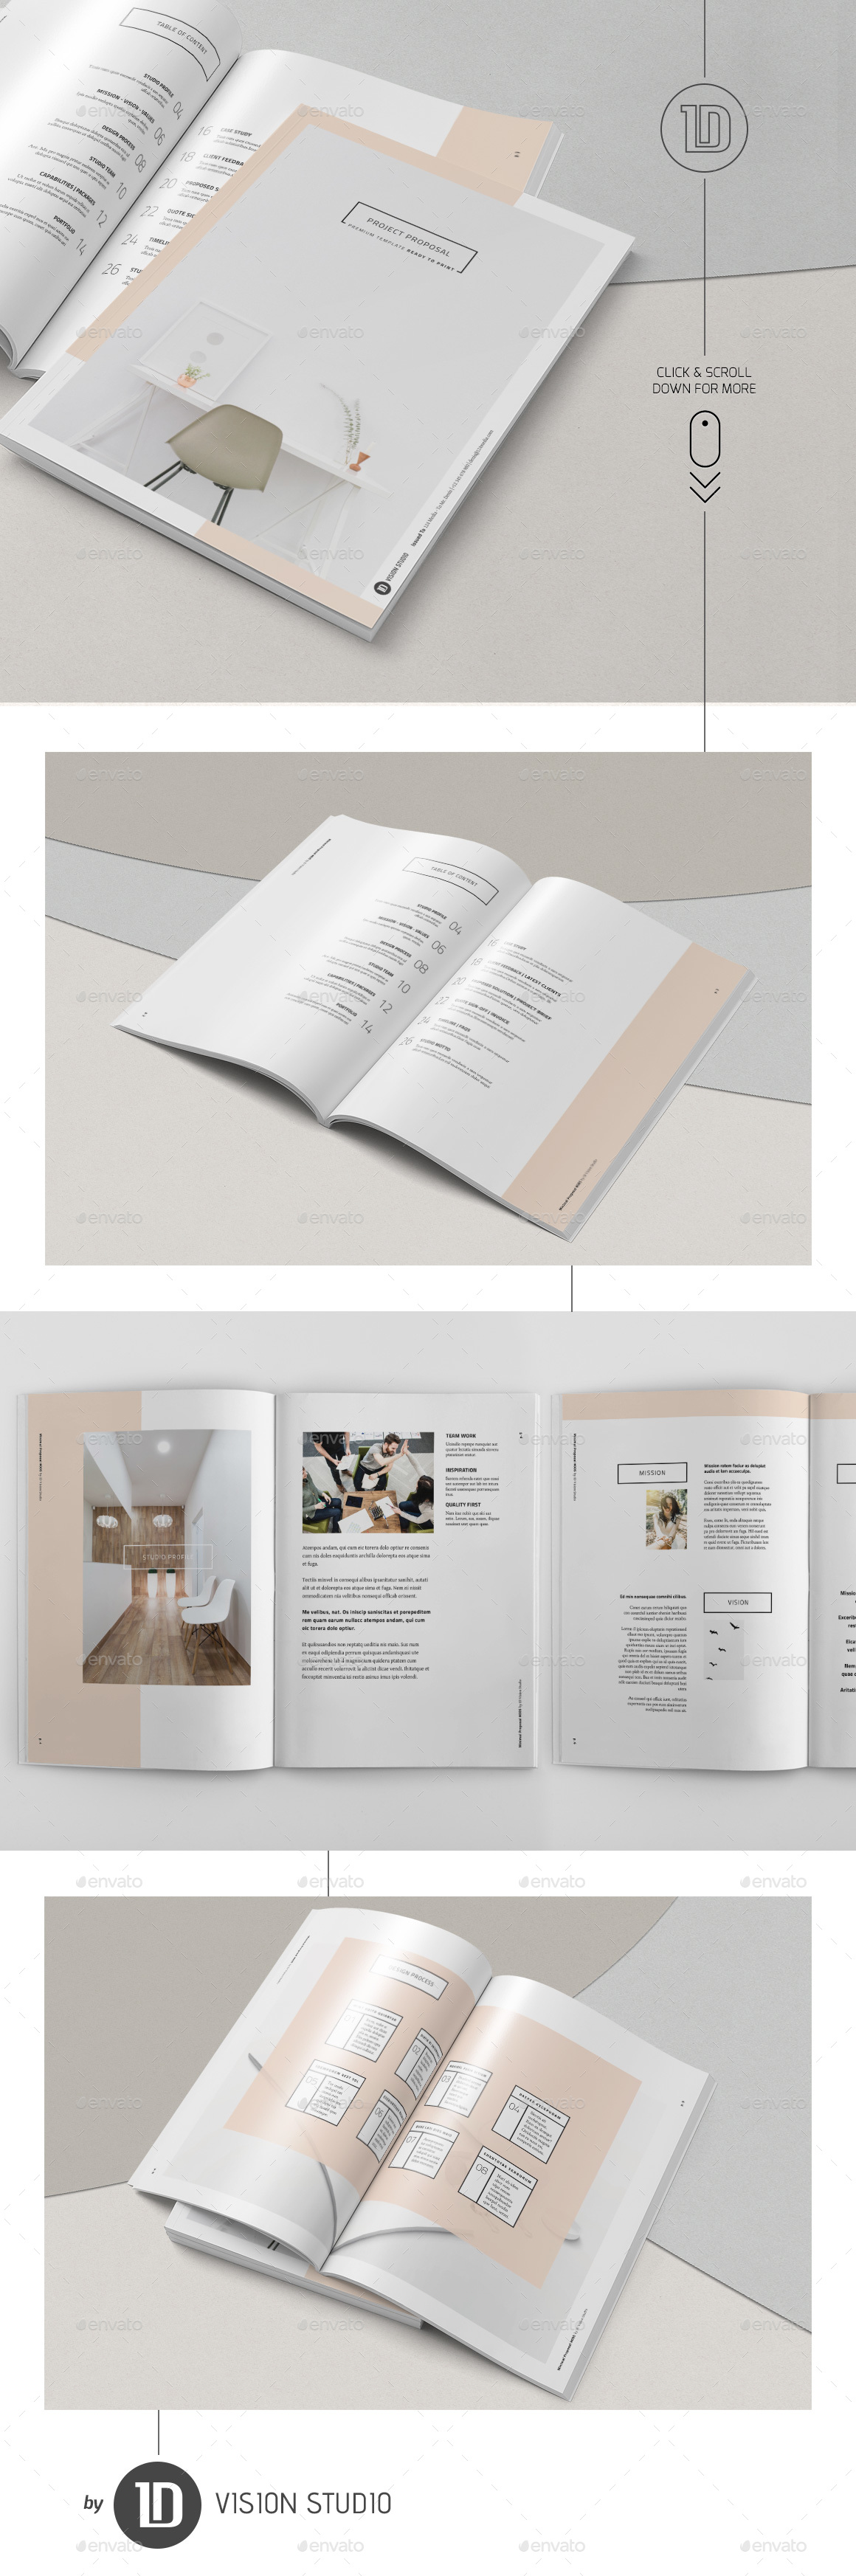 Project Proposal Template 005 Minimalist by ID_Vision_Studio ...